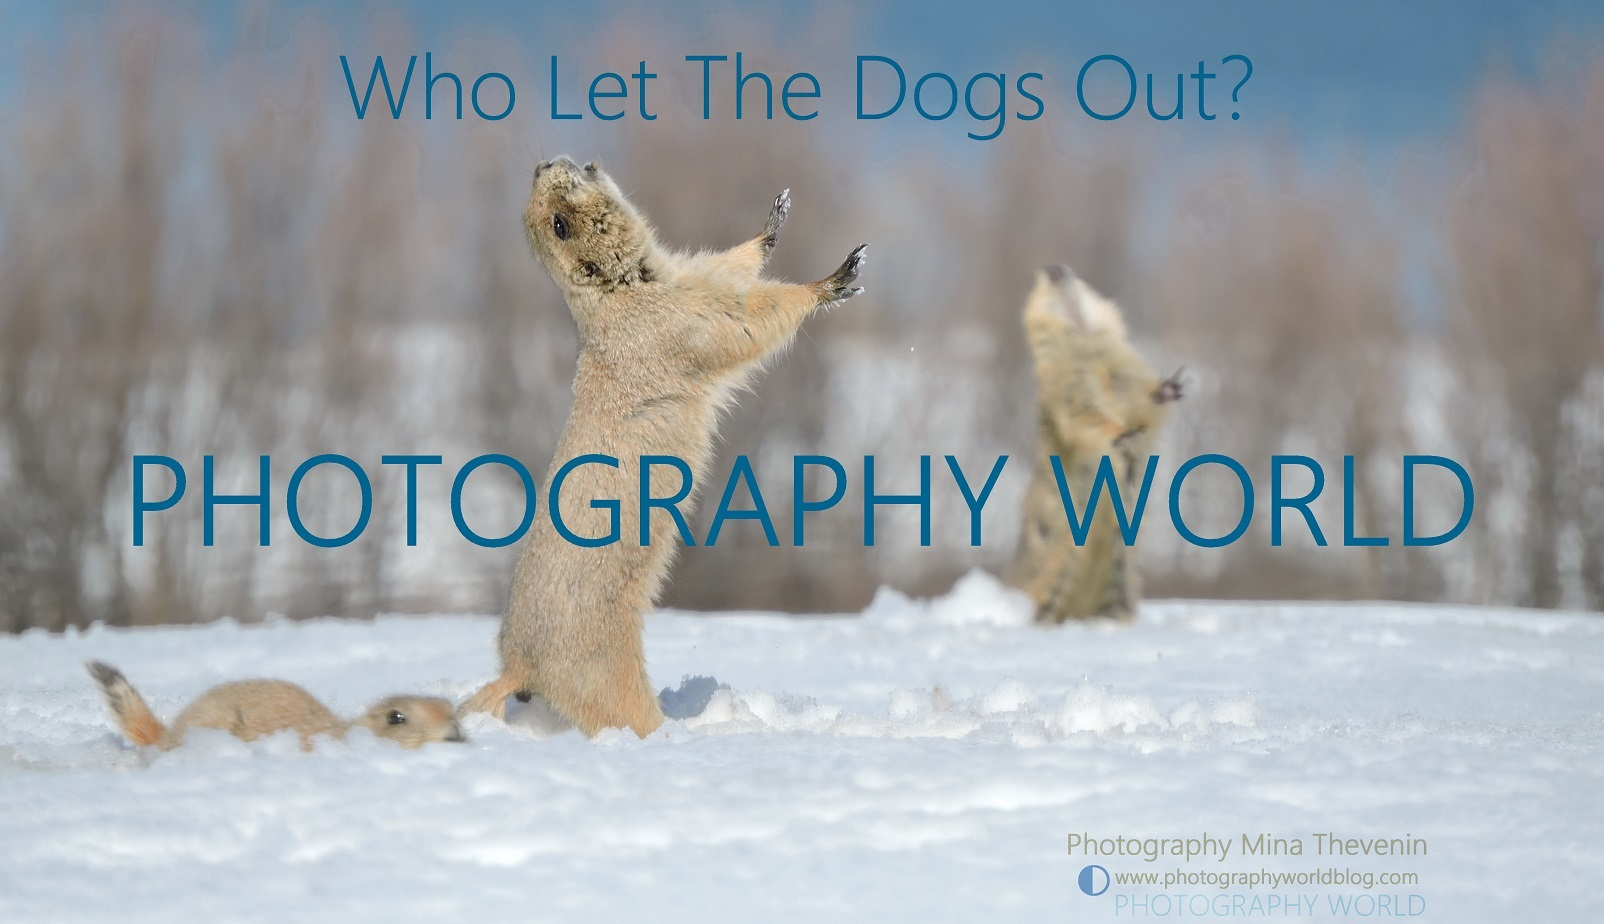 © Talking Prairie Dogs. photographyworld.org. Photograph by Mina Thevenin for PHOTOGRAPHY WORLD article: Black-Tailed Prairie Dog: Who Let the Dogs Out? @ https://photographyworld.org/animals/black-tailed-prairie-dog-who-let-the-dogs-out/